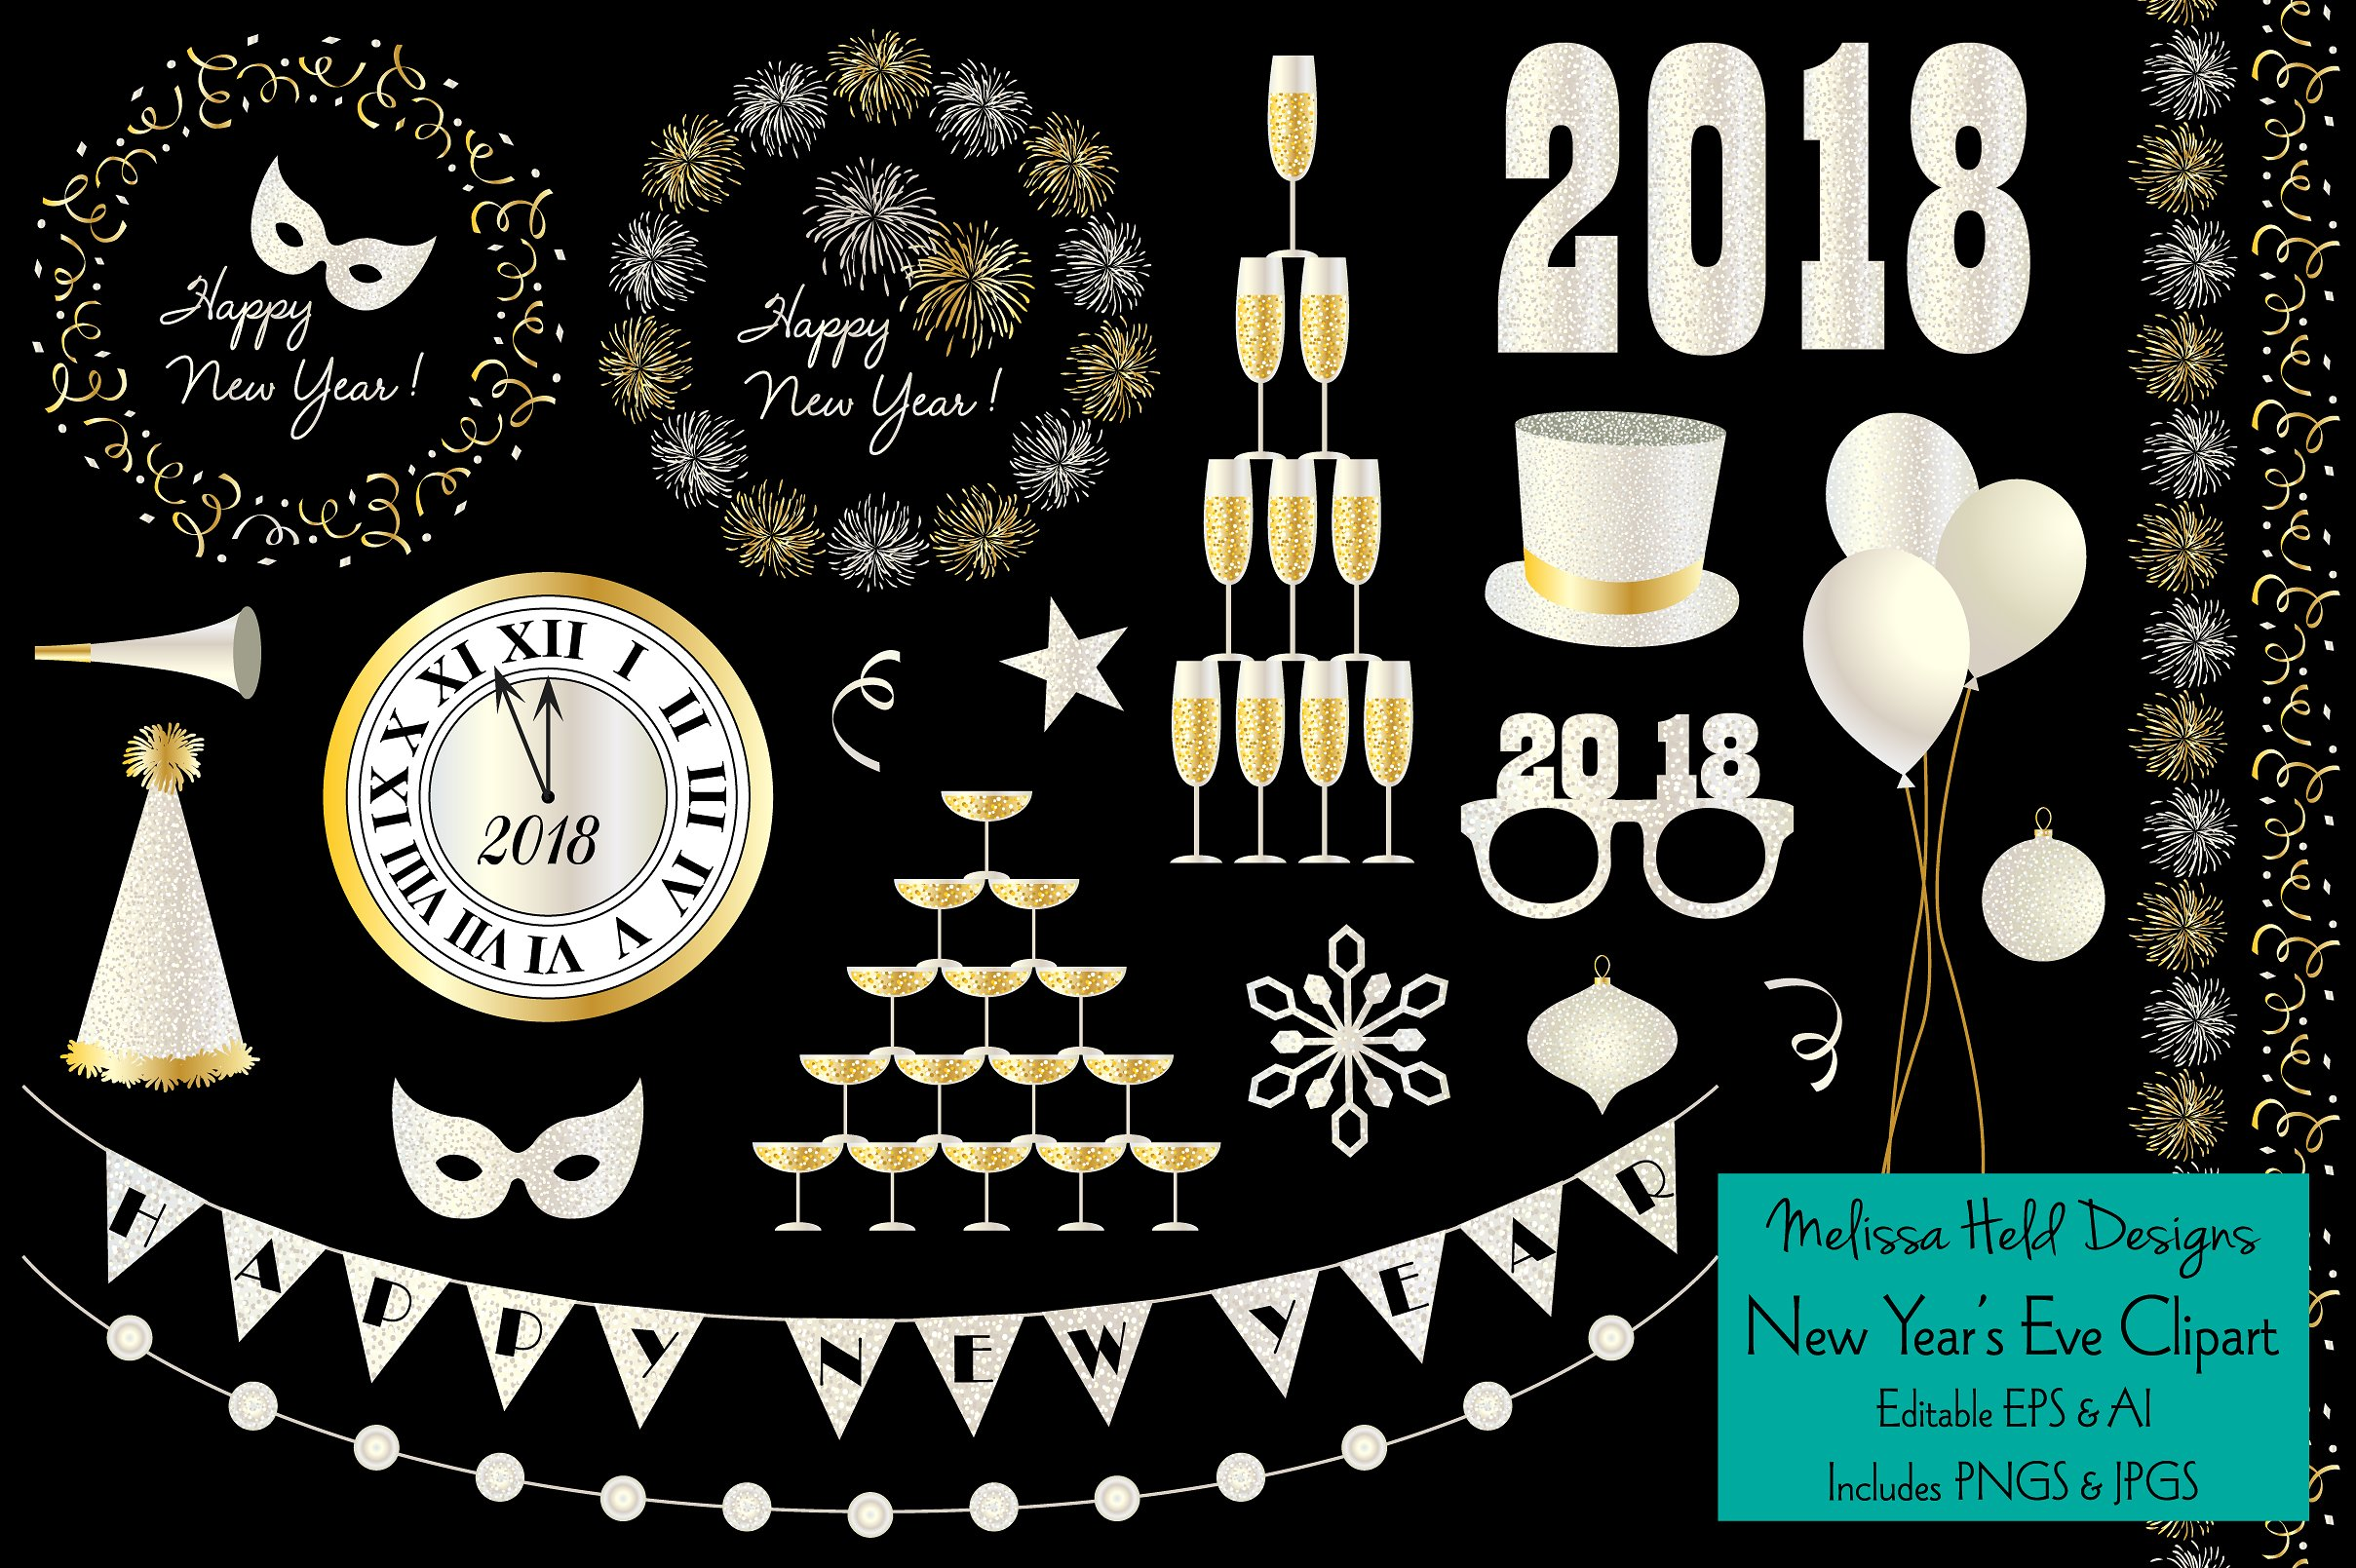 Glitter year s illustrations. 2018 clipart new year's eve